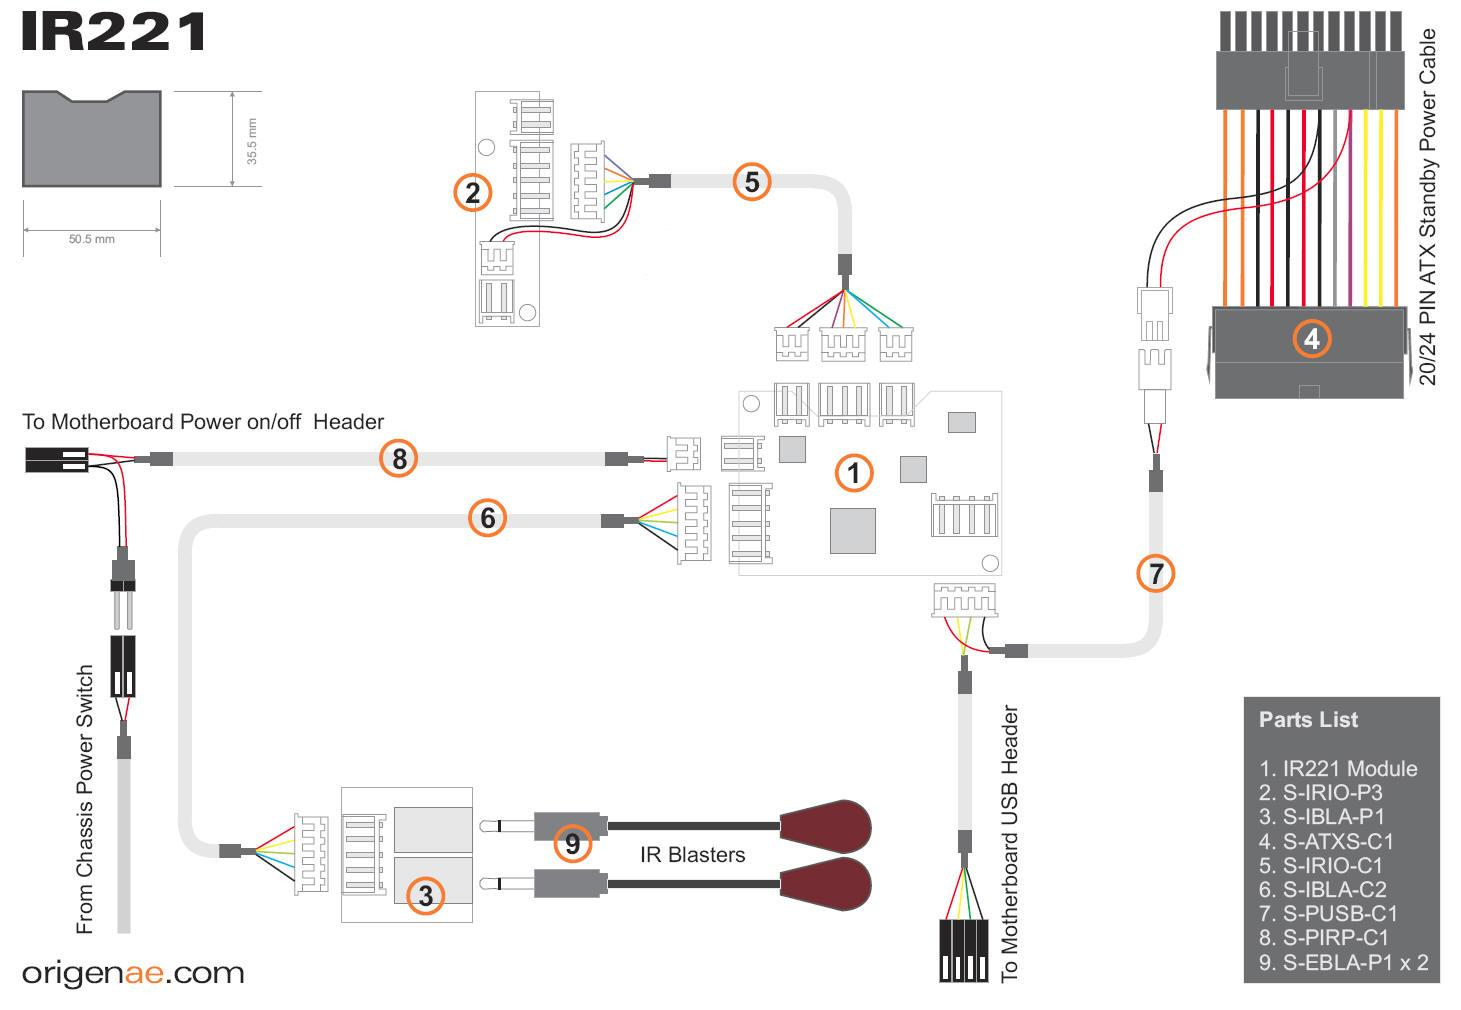 Usb 3 Cable Wiring Diagram | Manual E-Books - Usb 3 Cable Wiring Diagram